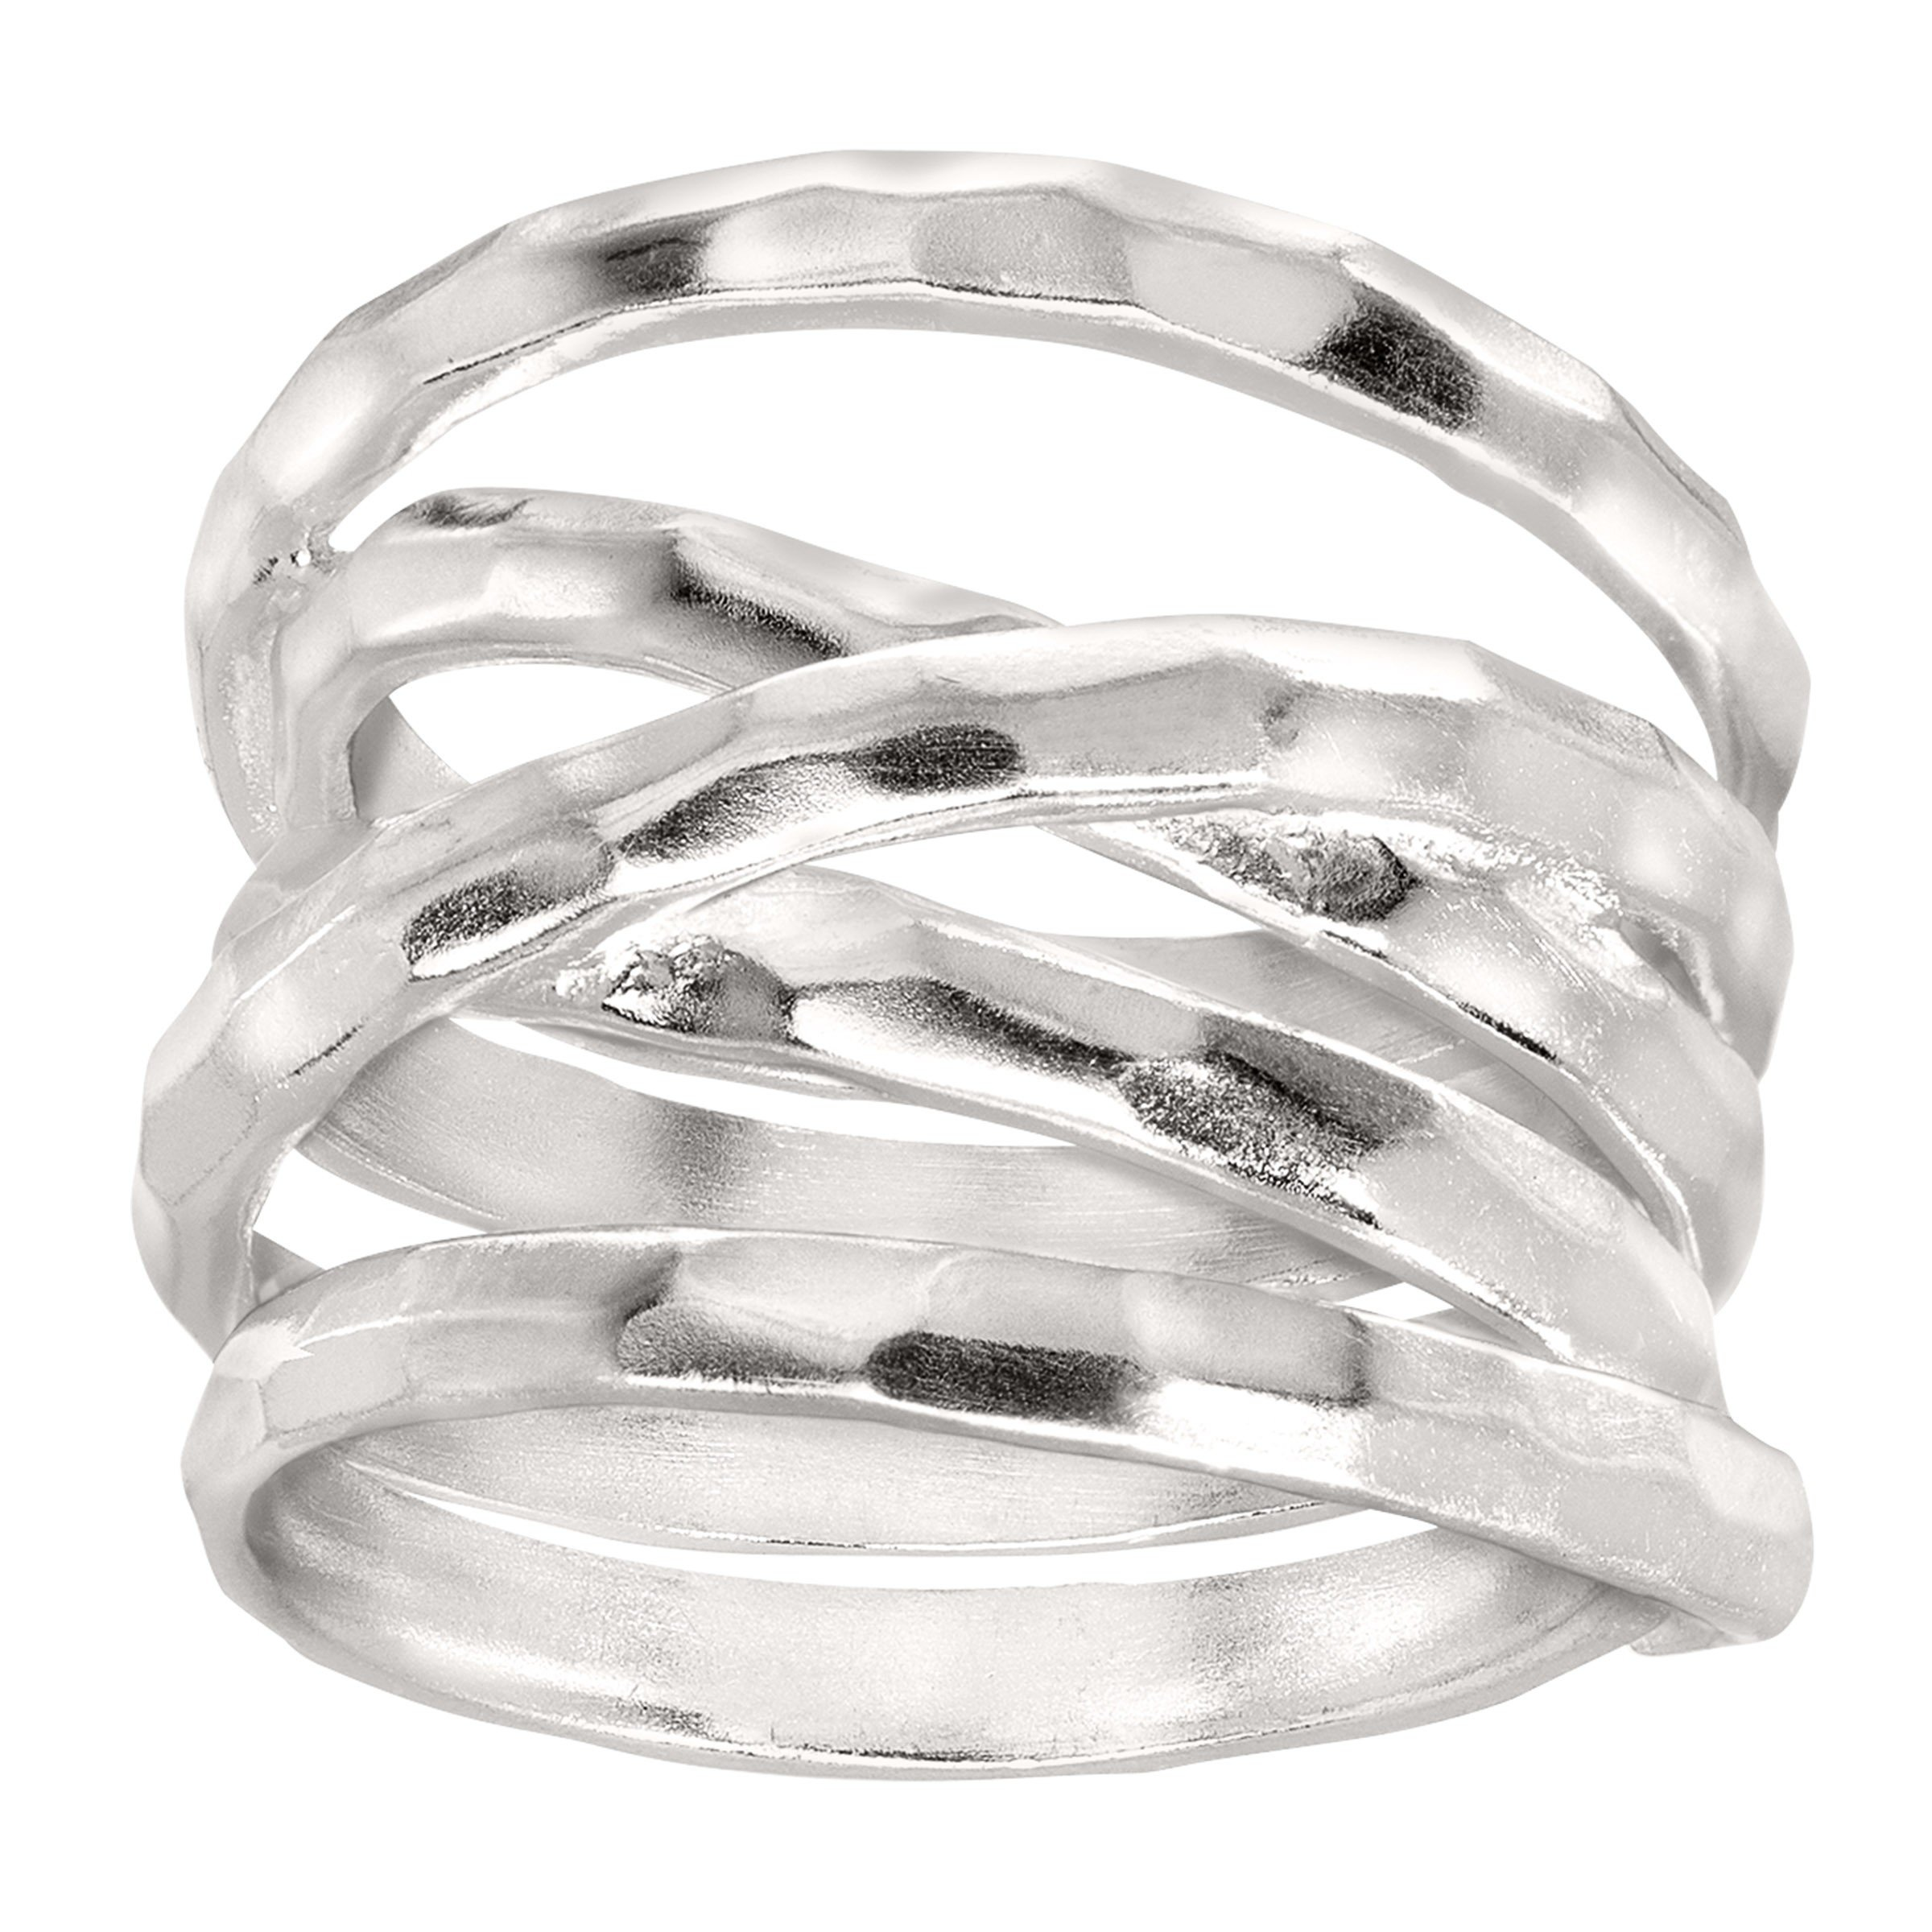 Silpada 'Wrapped Up' Sterling Silver Ring, Size 10 by Silpada